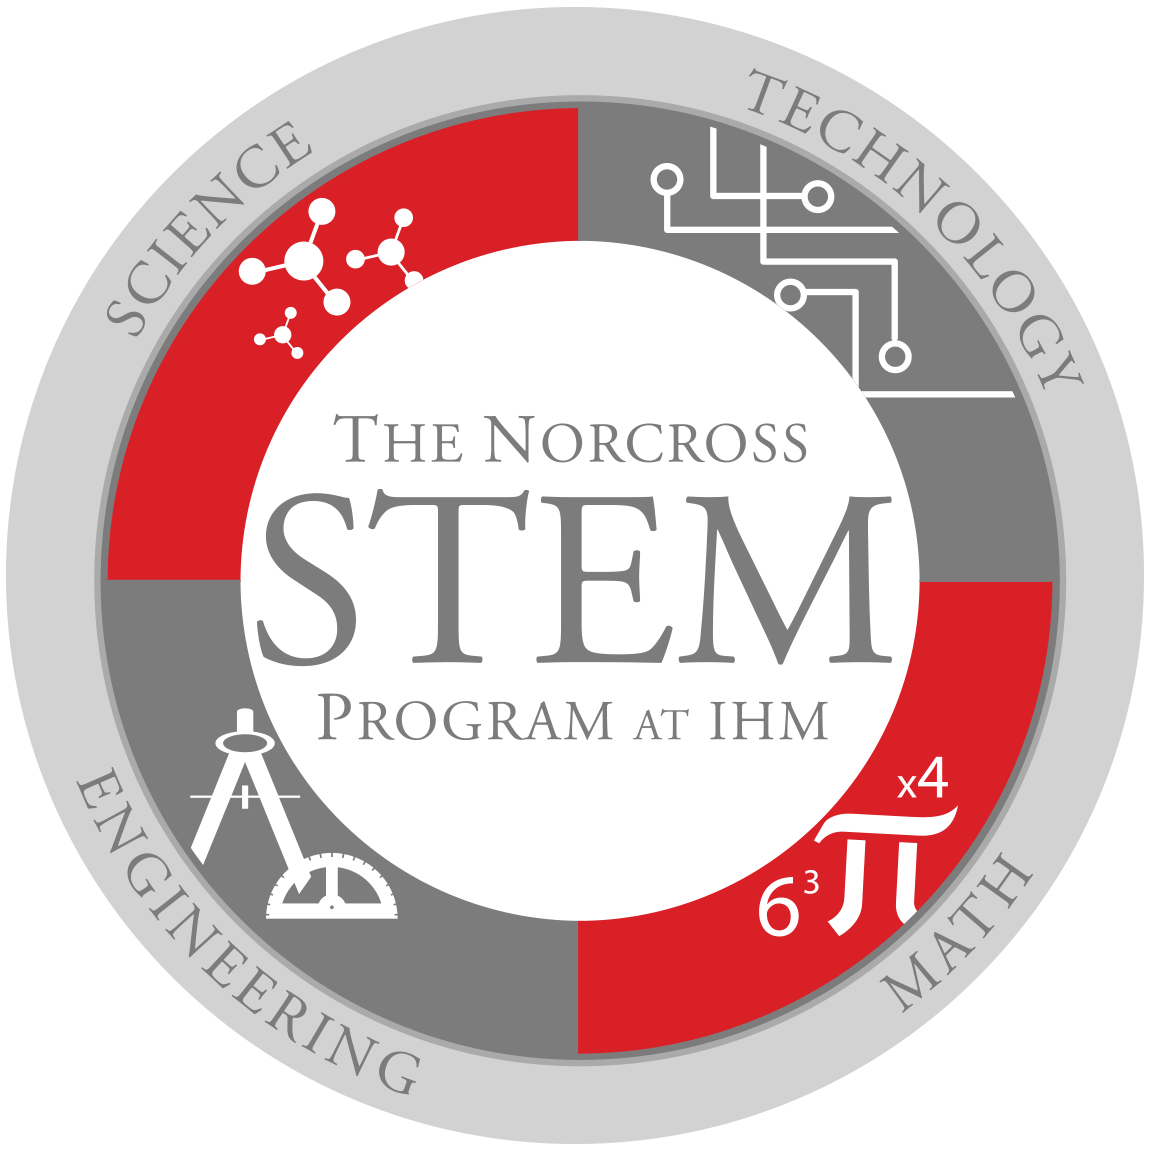 Stem School Program: Norcross STEM Program At IHM